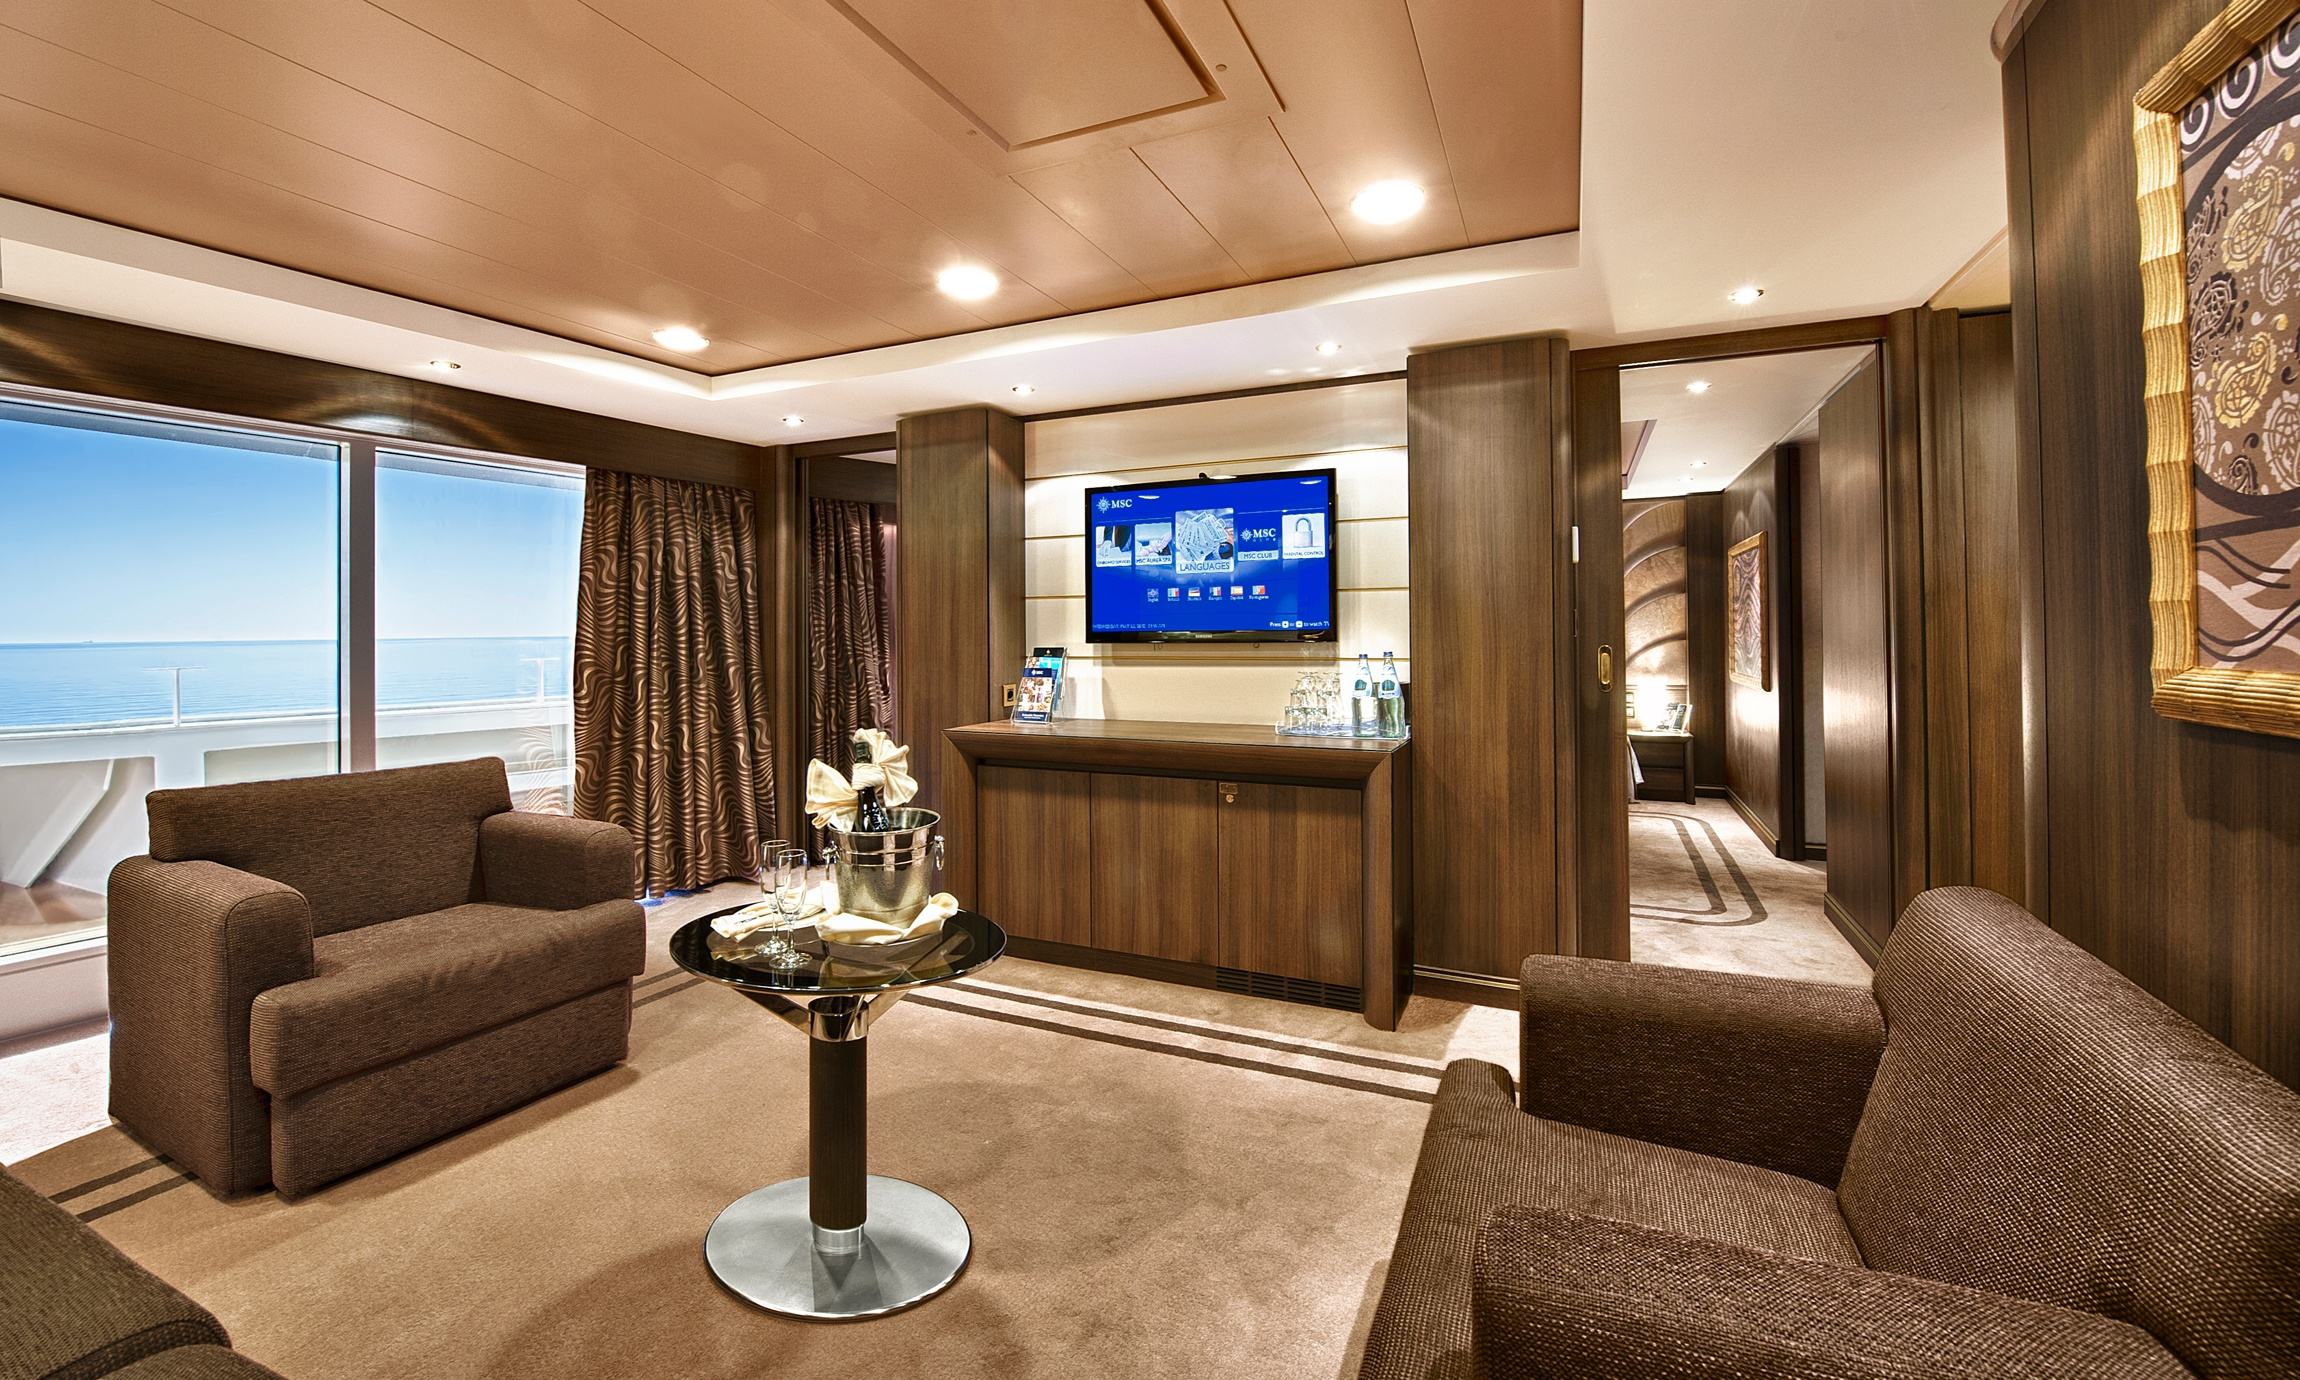 Royal Suite Appr 52 Square Metres With A Private Balcony